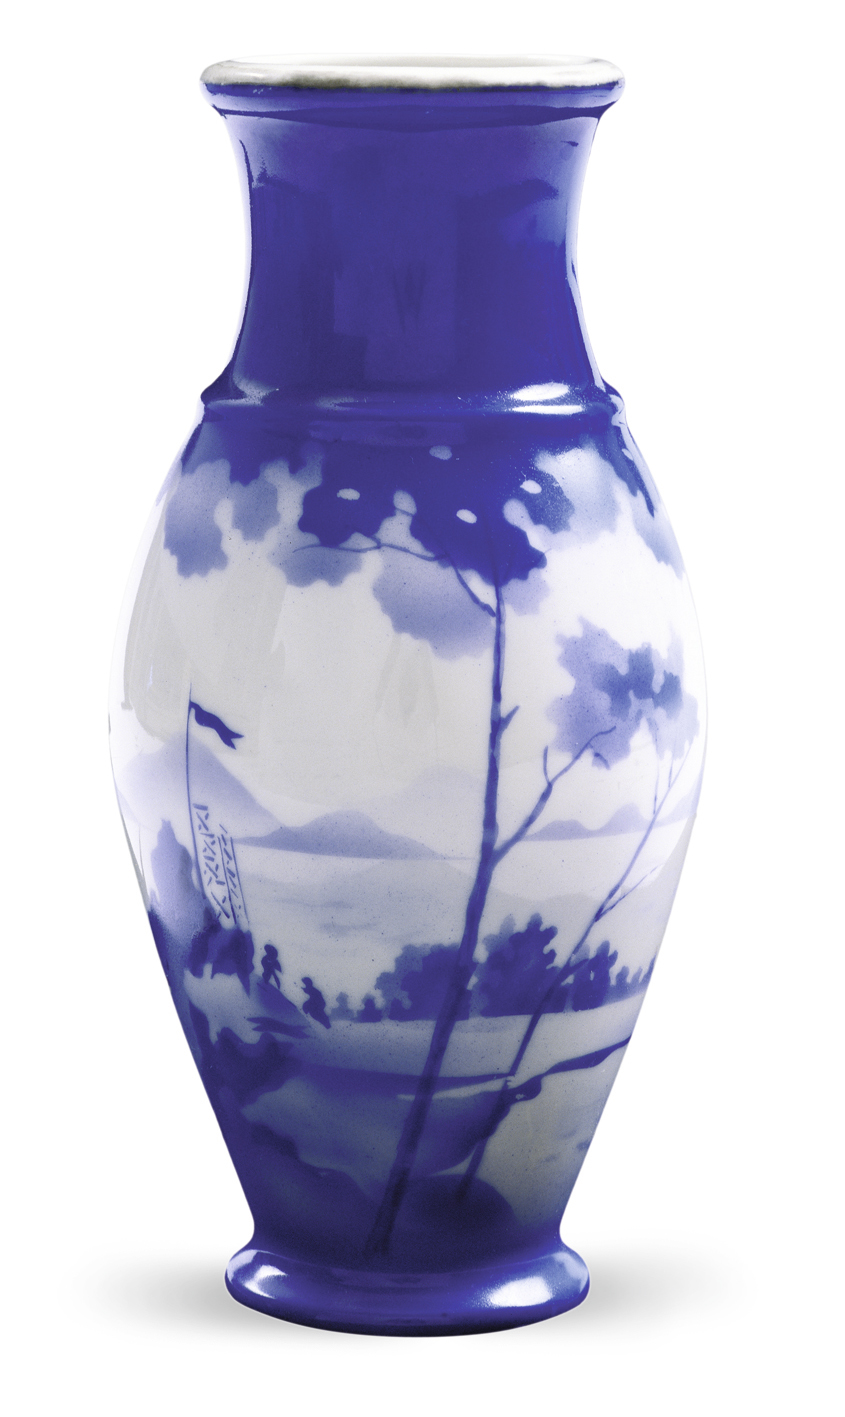 http://russianartsfoundation.com/files/2666/3b_2_vase_with_continuous_landscape_with_borderguards_1930s-6099.jpg